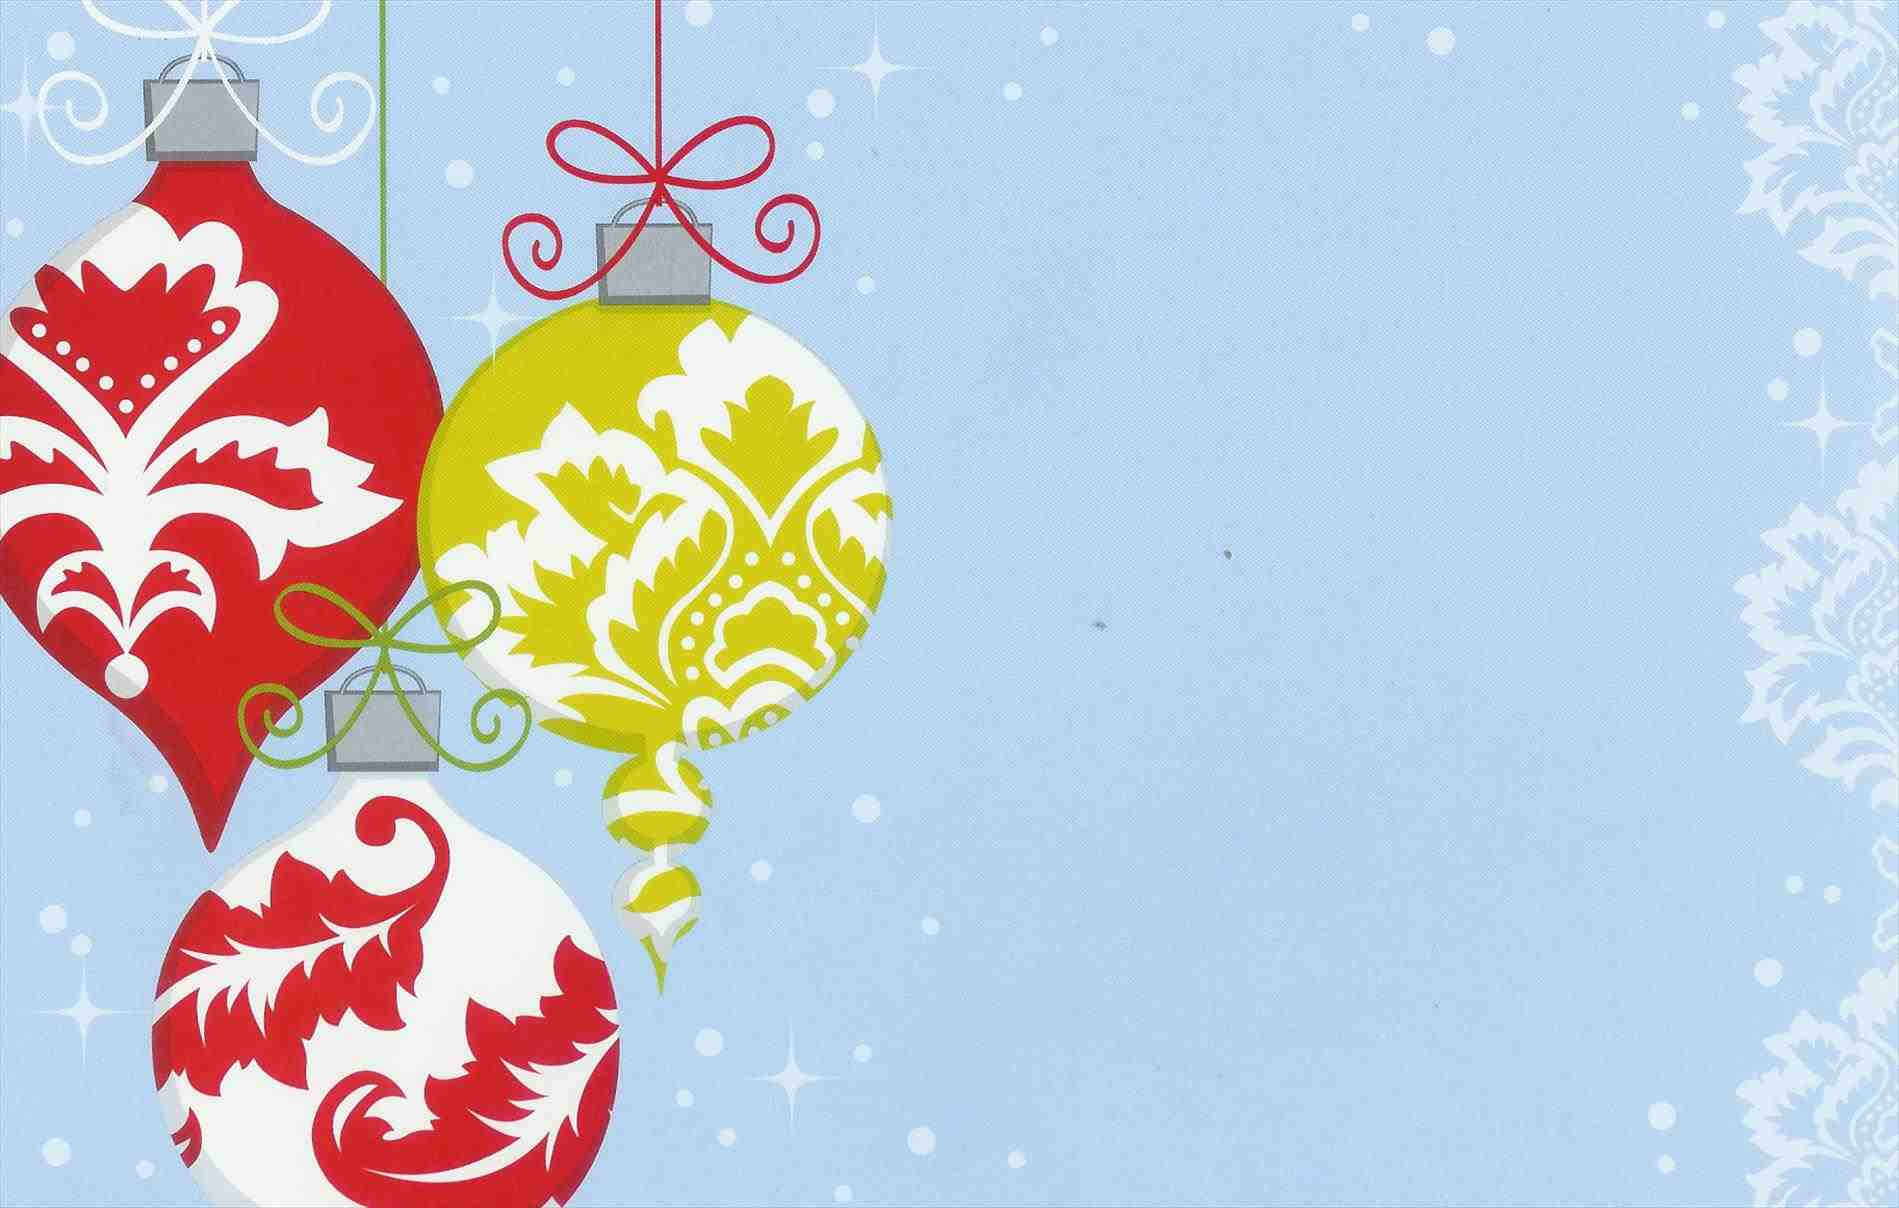 1899x1208 Christmas Party Images Clip Art Cheminee.website